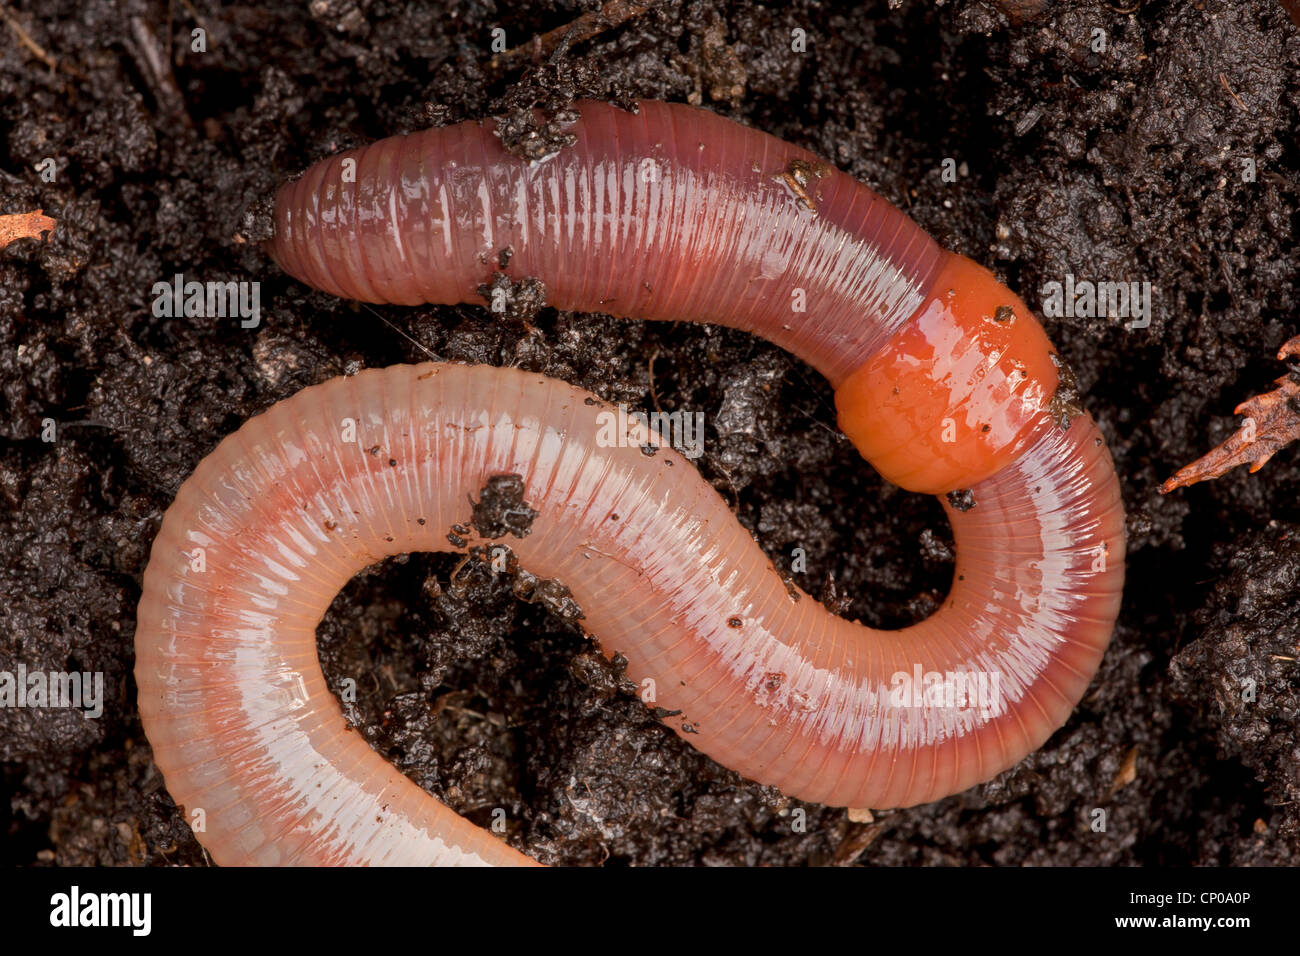 common-earthworm-earthworm-lob-worm-dew-